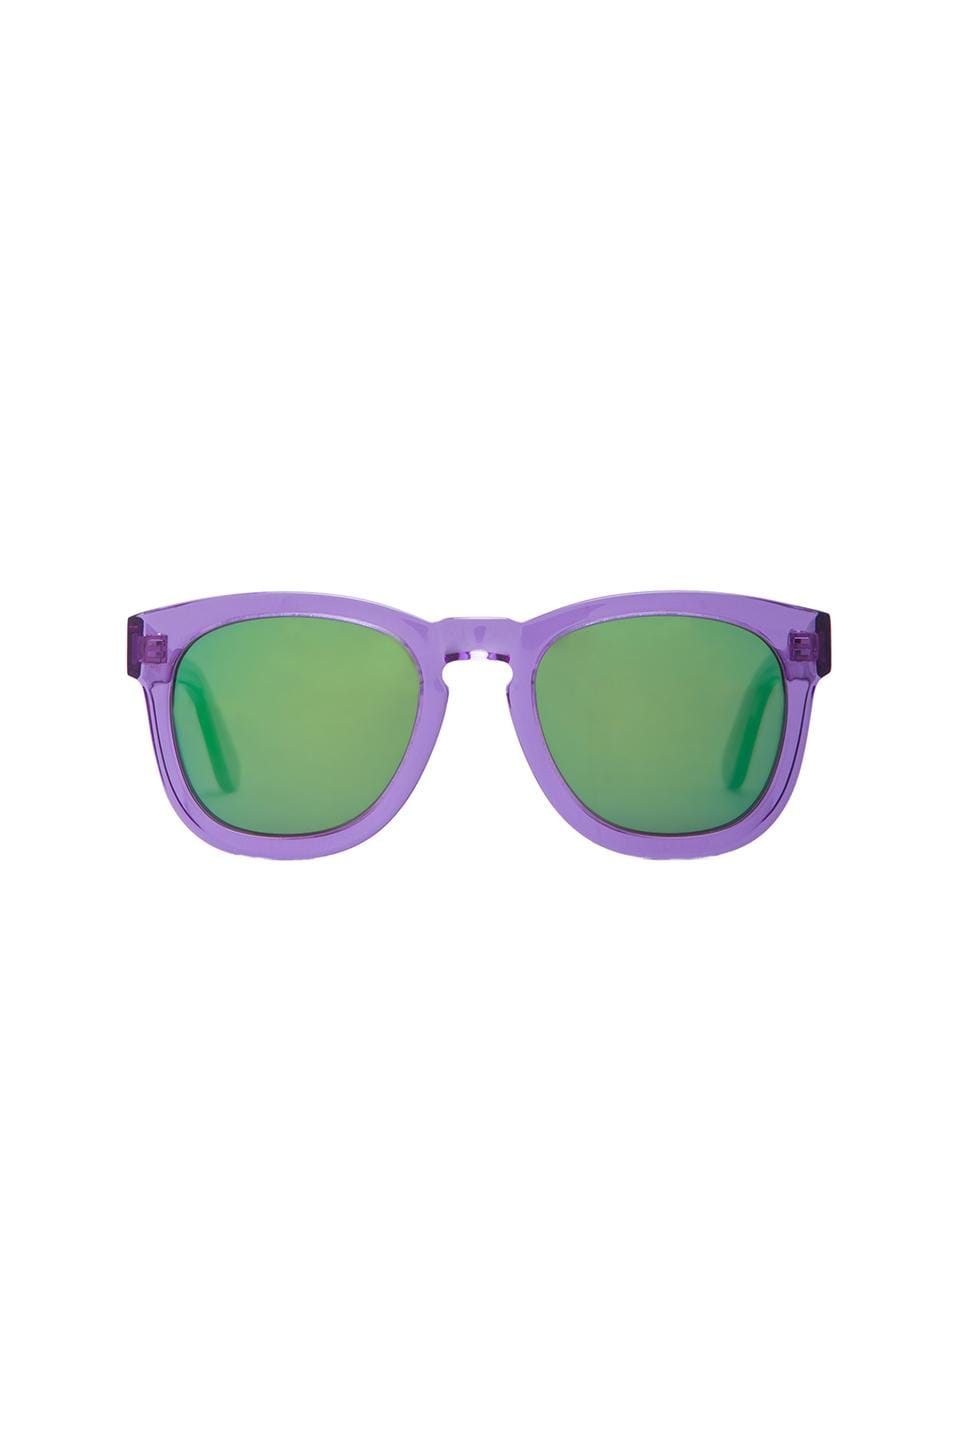 Wildfox Couture Classic Fox Deluxe Sunglasses in Purple/Blue Mirror